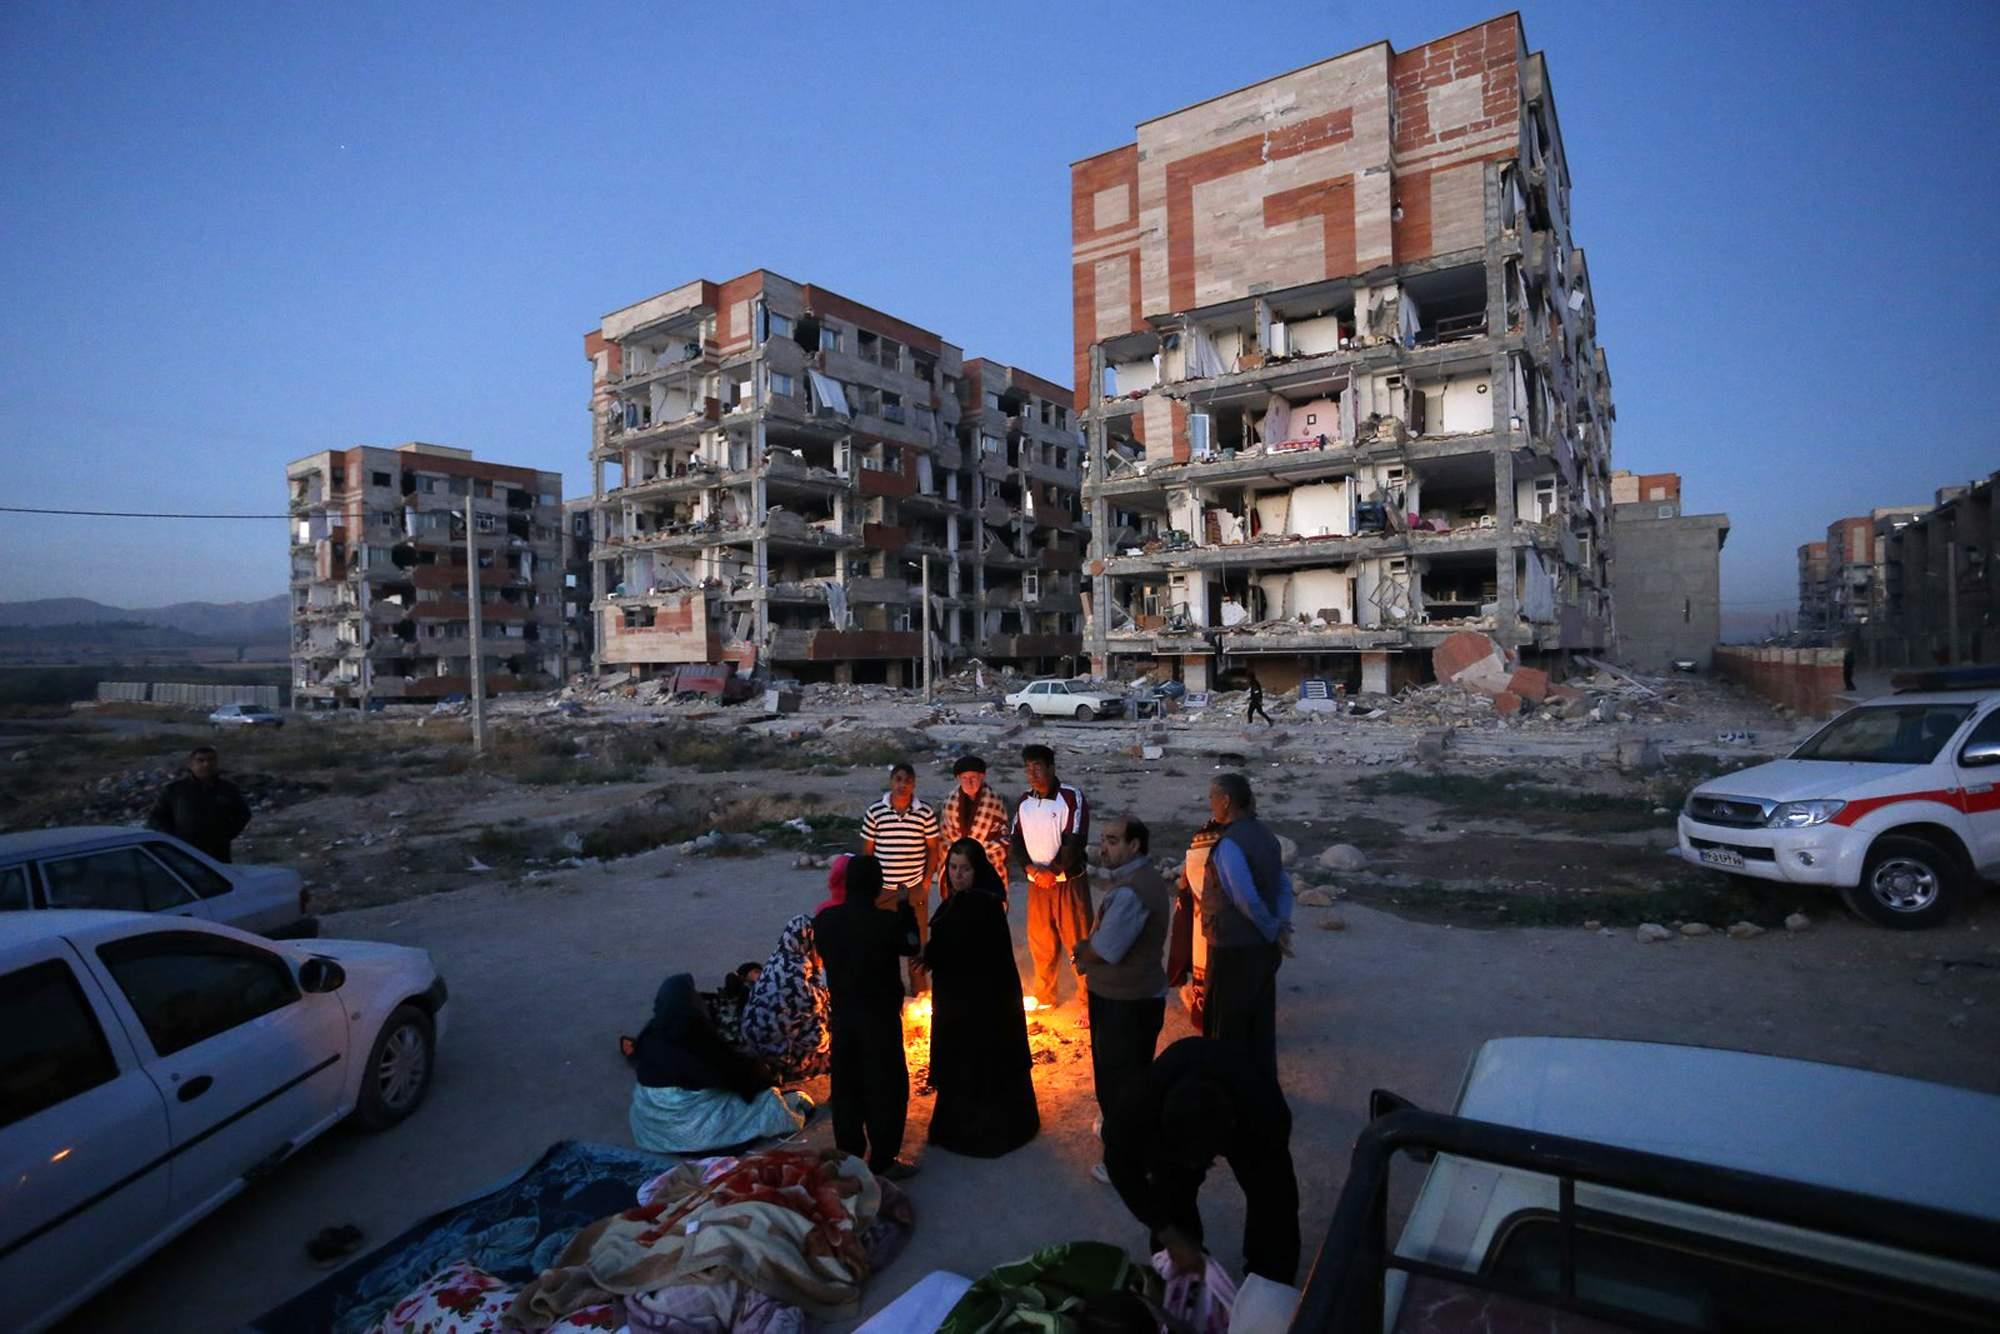 Iranian social media and news agencies showed images and videos of people fleeing their homes into the night. More than 100 aftershocks followed.